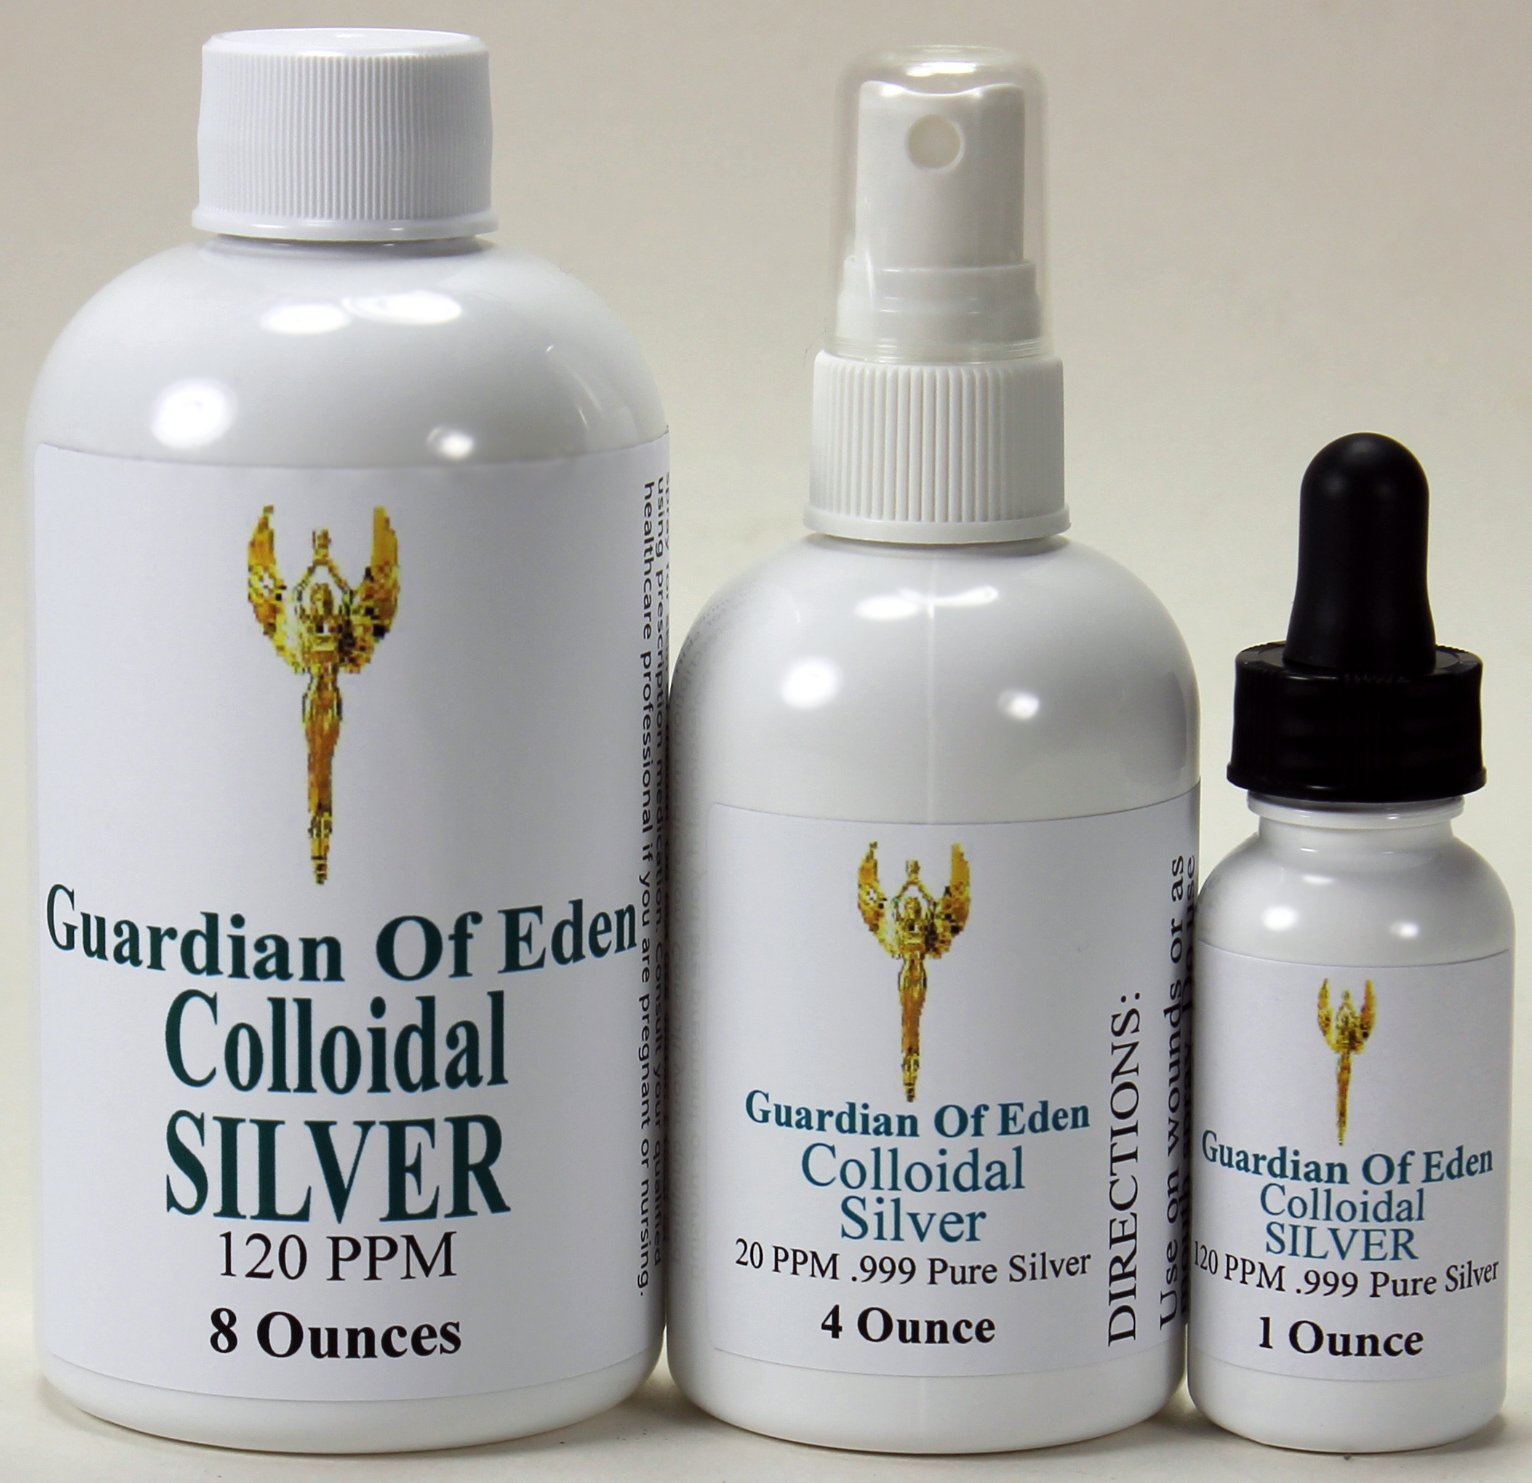 GOE 8 Fl Oz 120ppm Colloidal Silver & 4 Fl Oz 20ppm Colloidal Silver Spray Bottle + Free 1 Oz 120ppm Colloidal Silver Filled Dropper Bottle! Lab Tested.